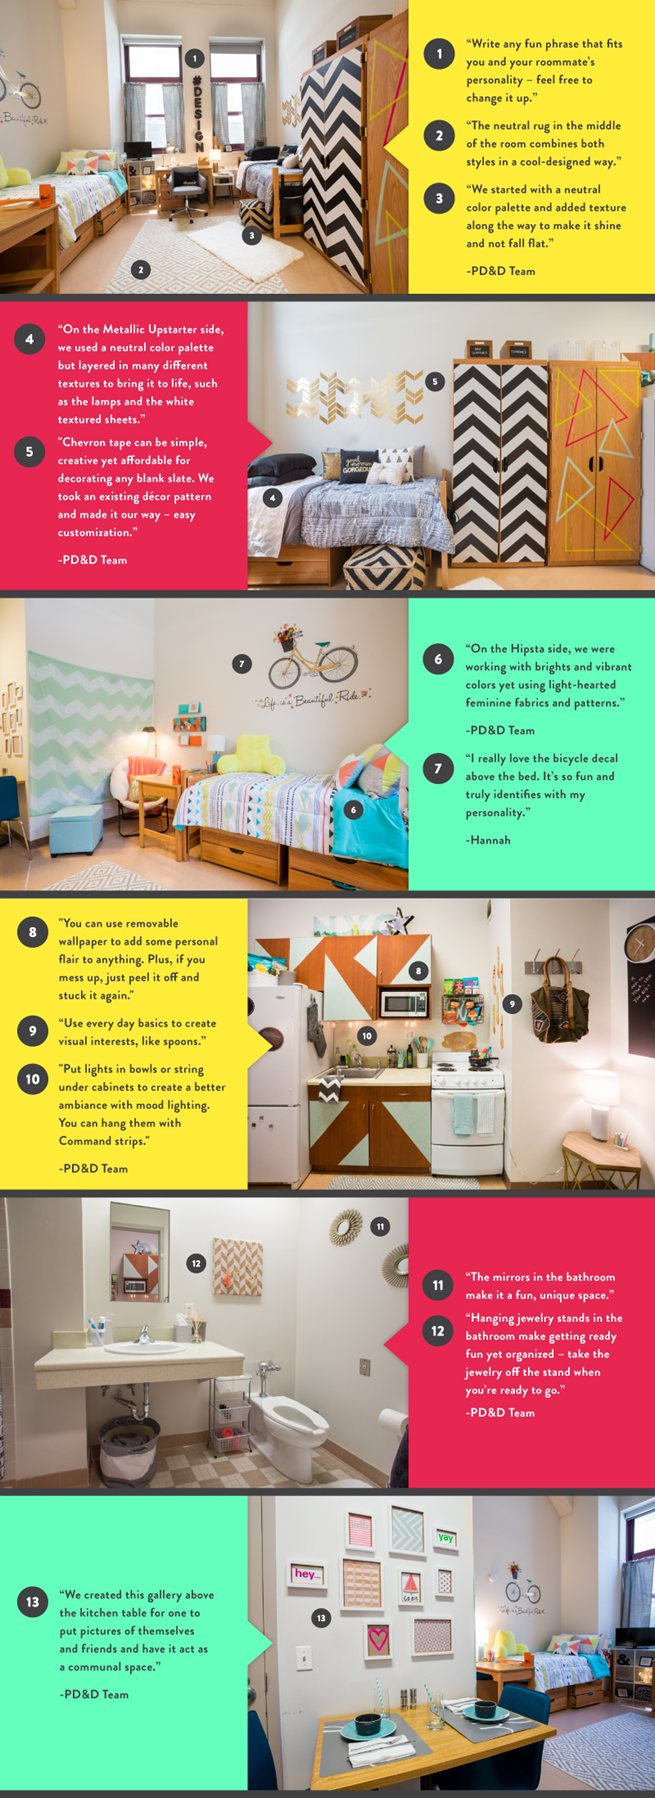 Create Your Own Shoppable Dorm Room Design And Learn More About The Made  For U College Styler! Part 67